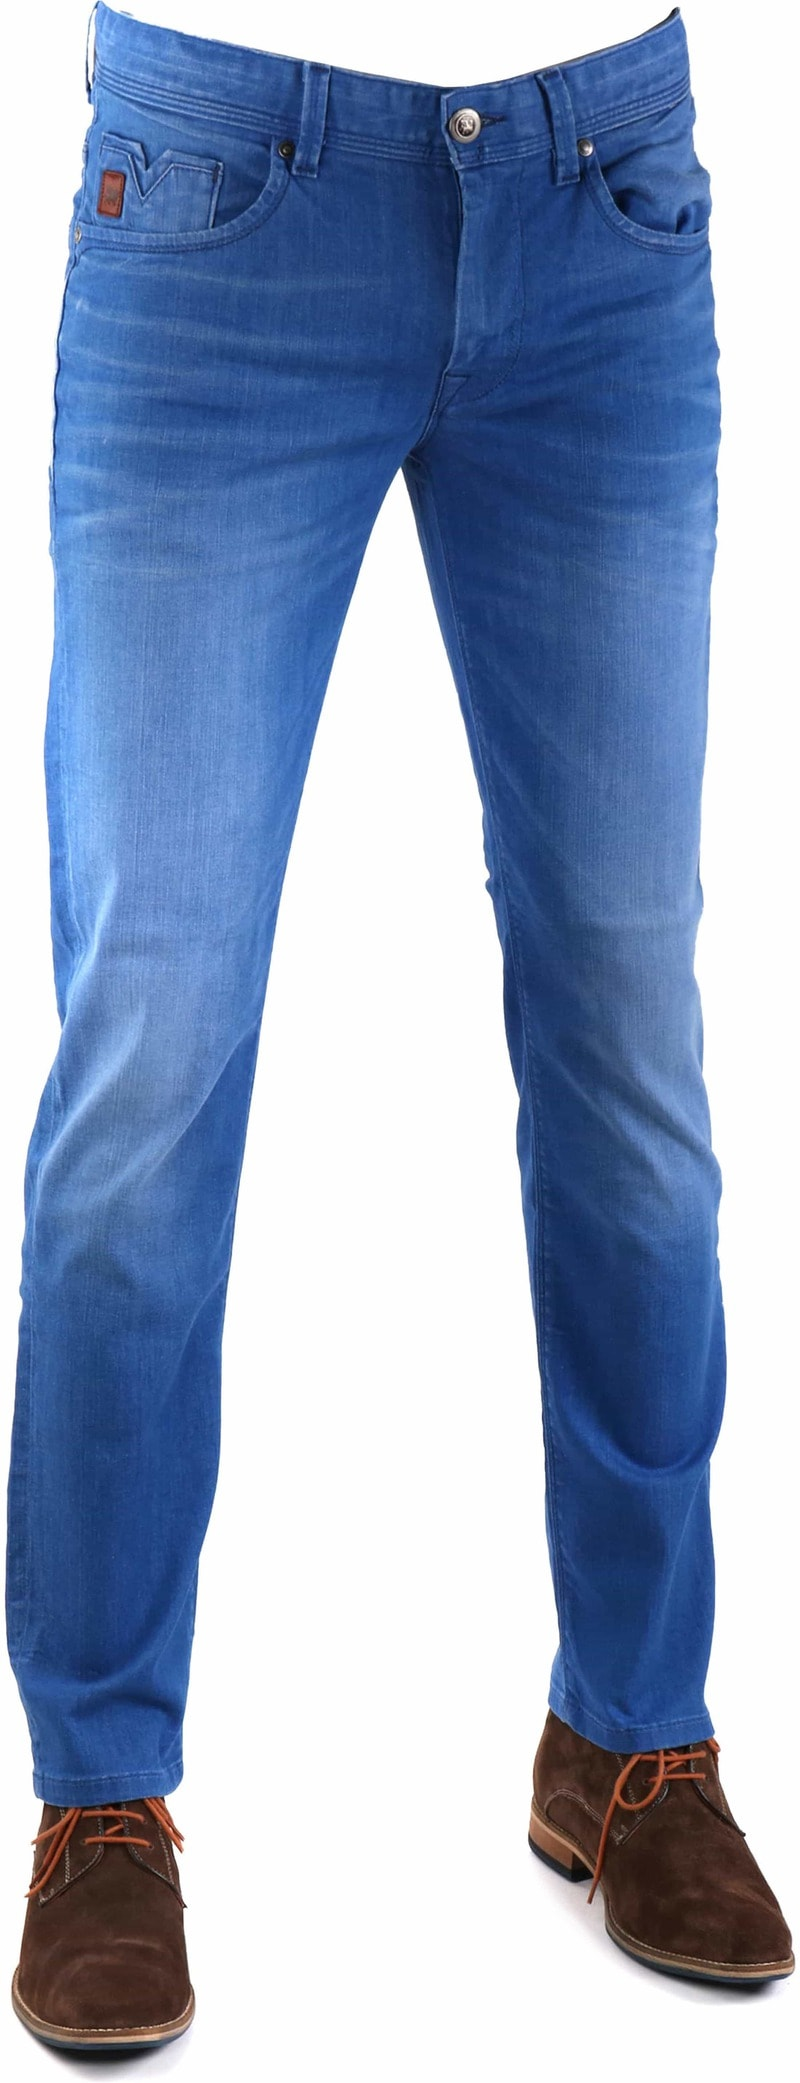 Vanguard V7 Rider Jeans Blue photo 0